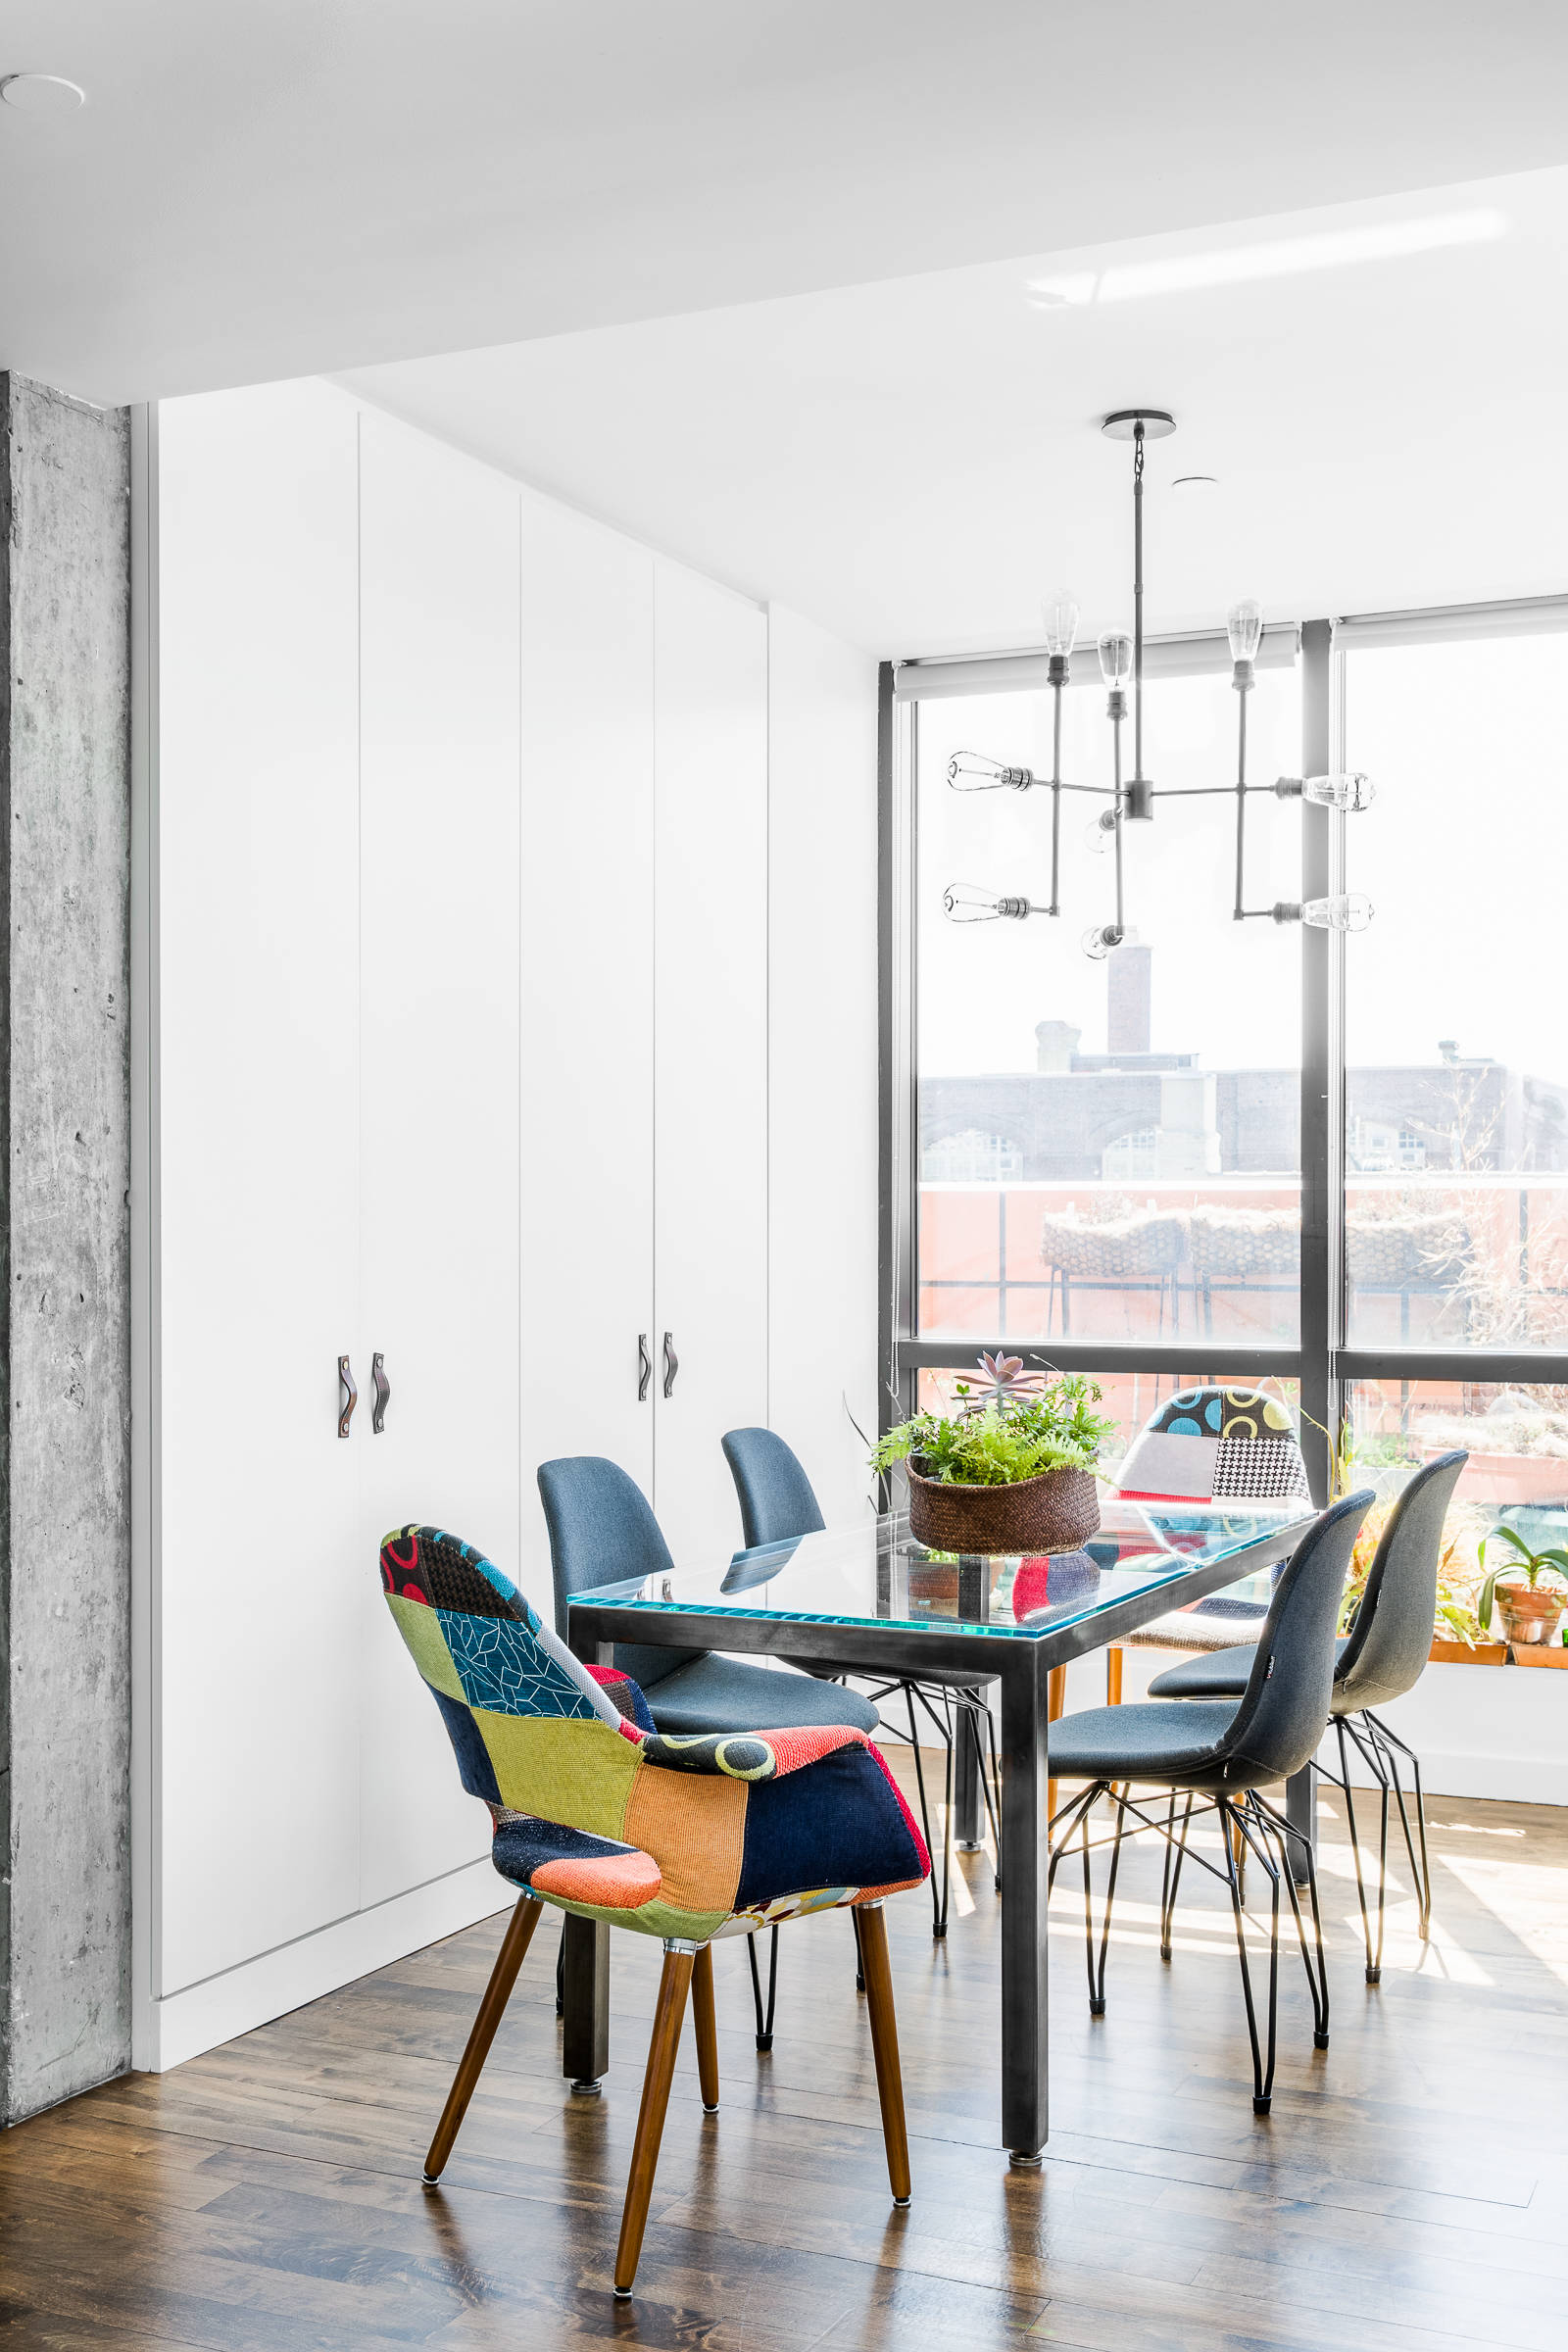 Two multi-colored chairs add contrast to this small contemporary dining room in neutral hues